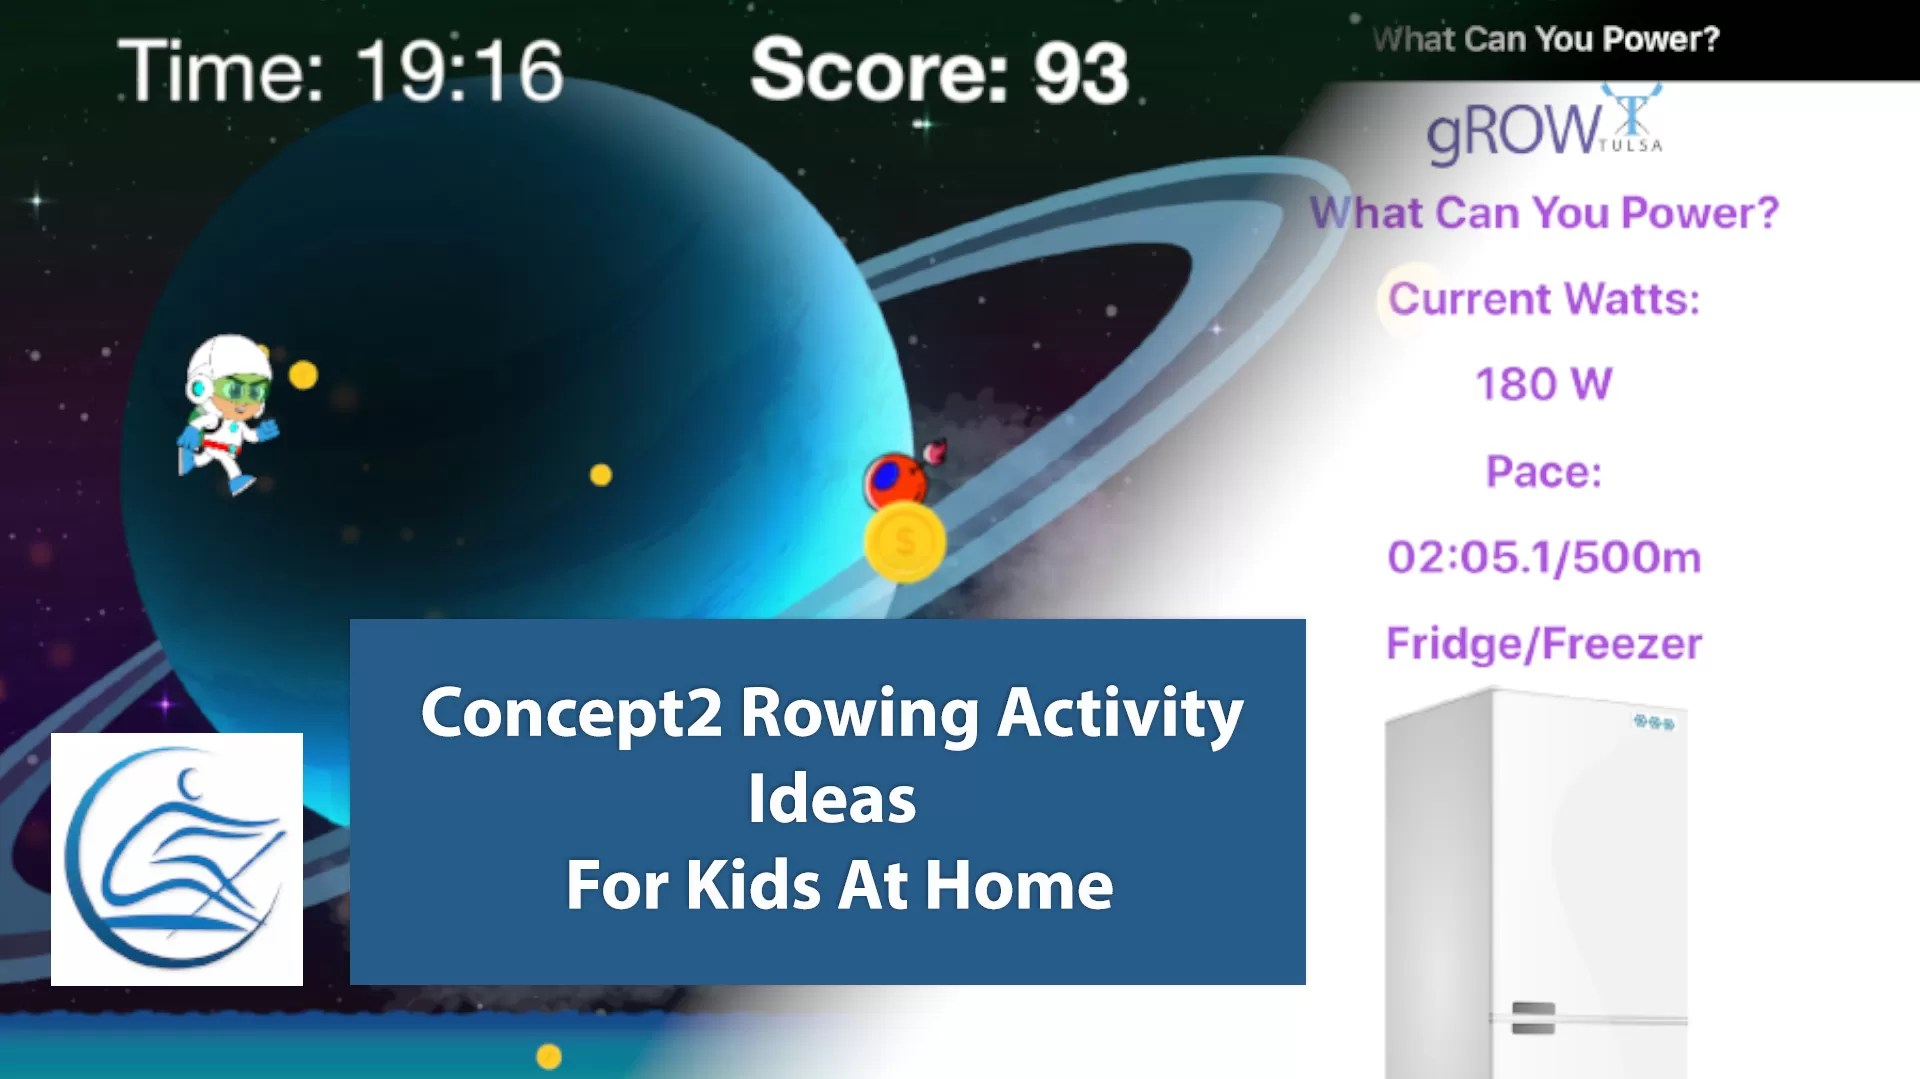 ideas for concept2 at home for kids large